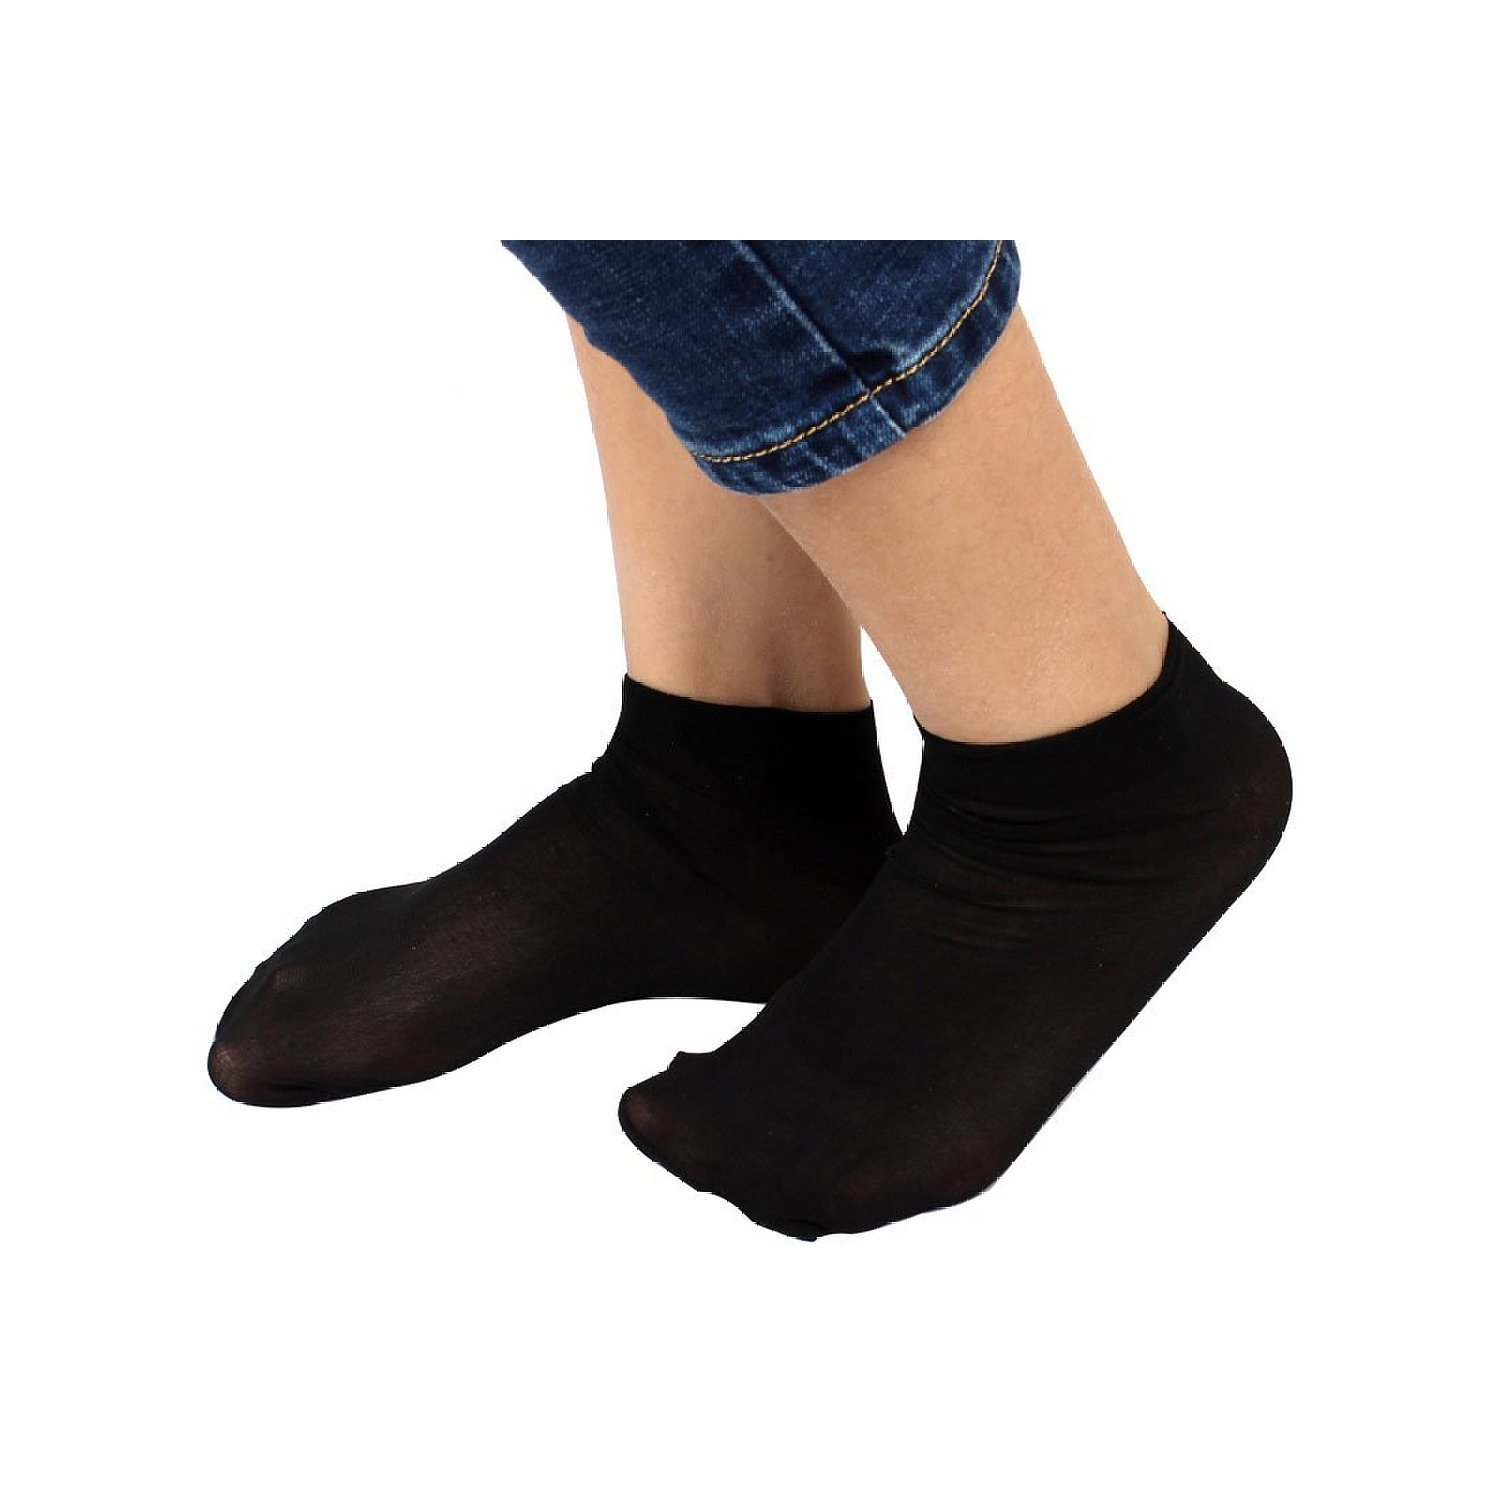 cc0c85b3b51 Get Quotations · Socks - TOOGOO(R) 10 Pairs Soft Elastic Black Sheer Ankle  Socks for Ladies